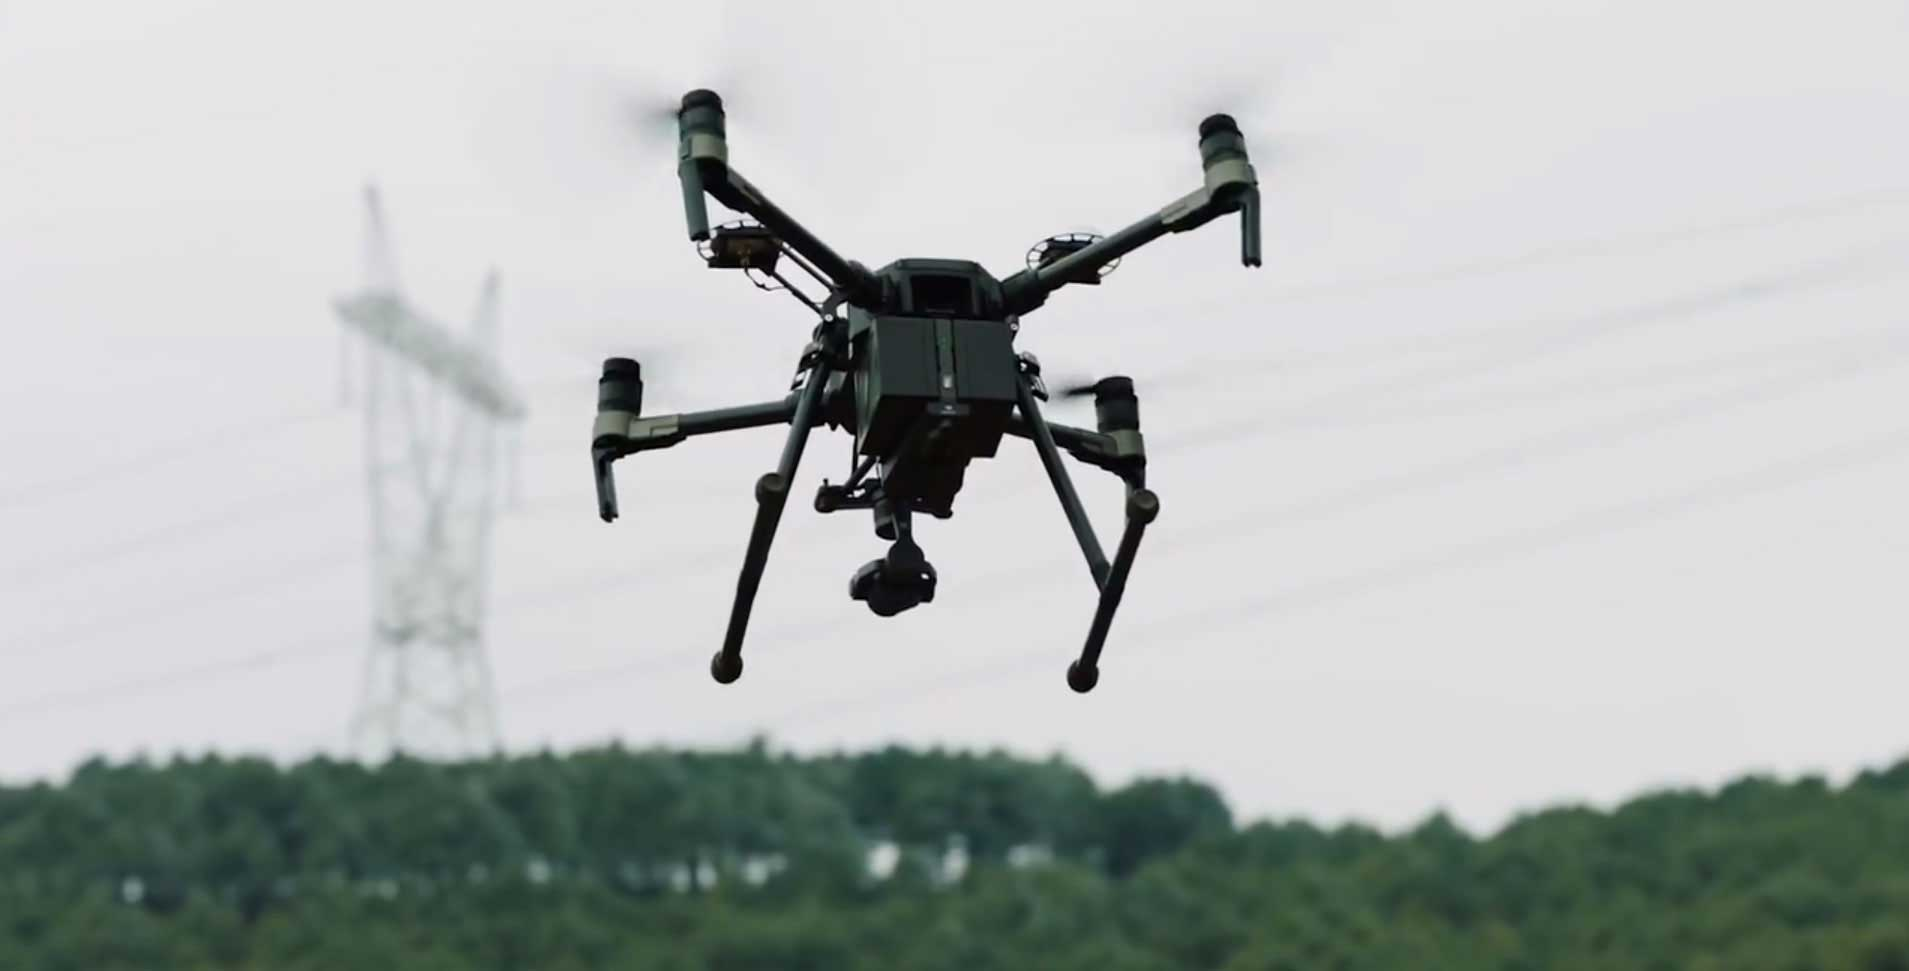 Remotely Piloted Aircraft Systems (RPAS) for sale in Australia | Position Partners